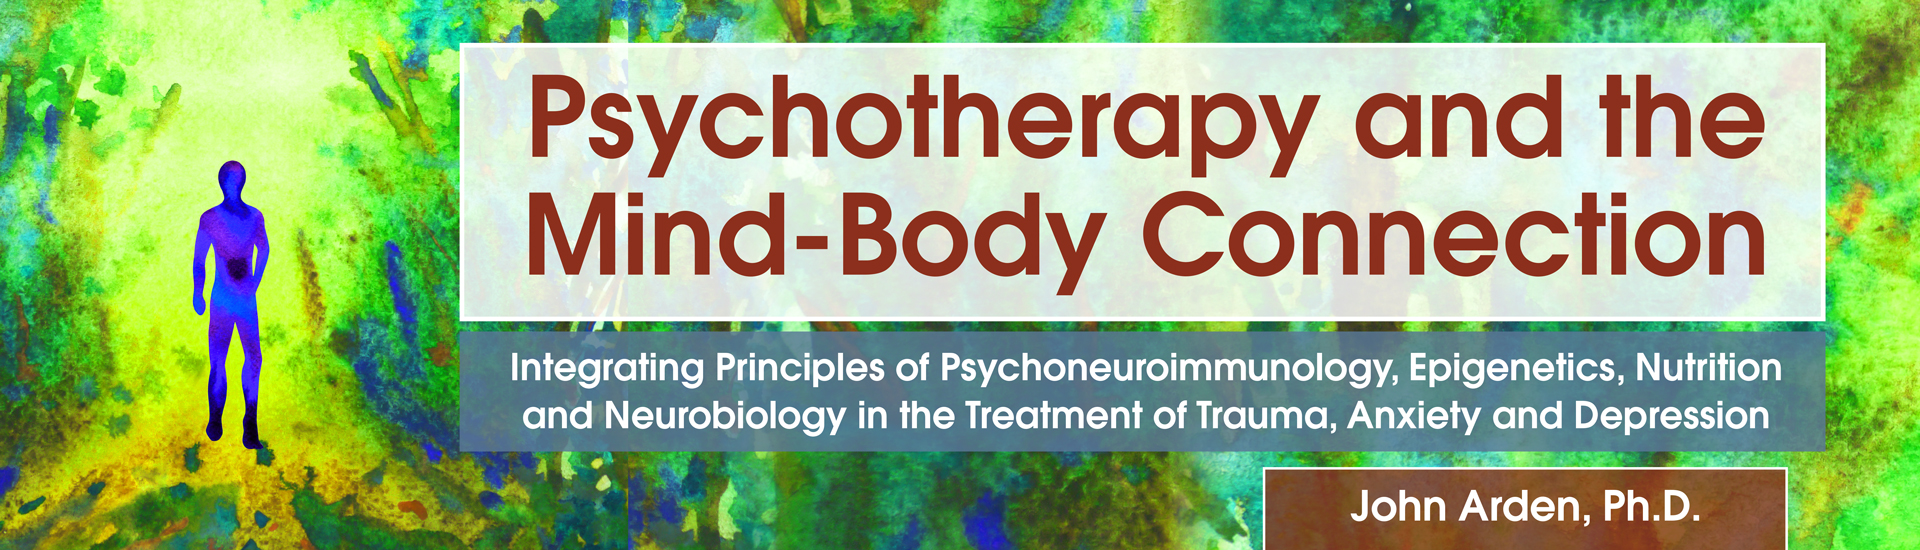 Psychotherapy and the Mind-Body Connection